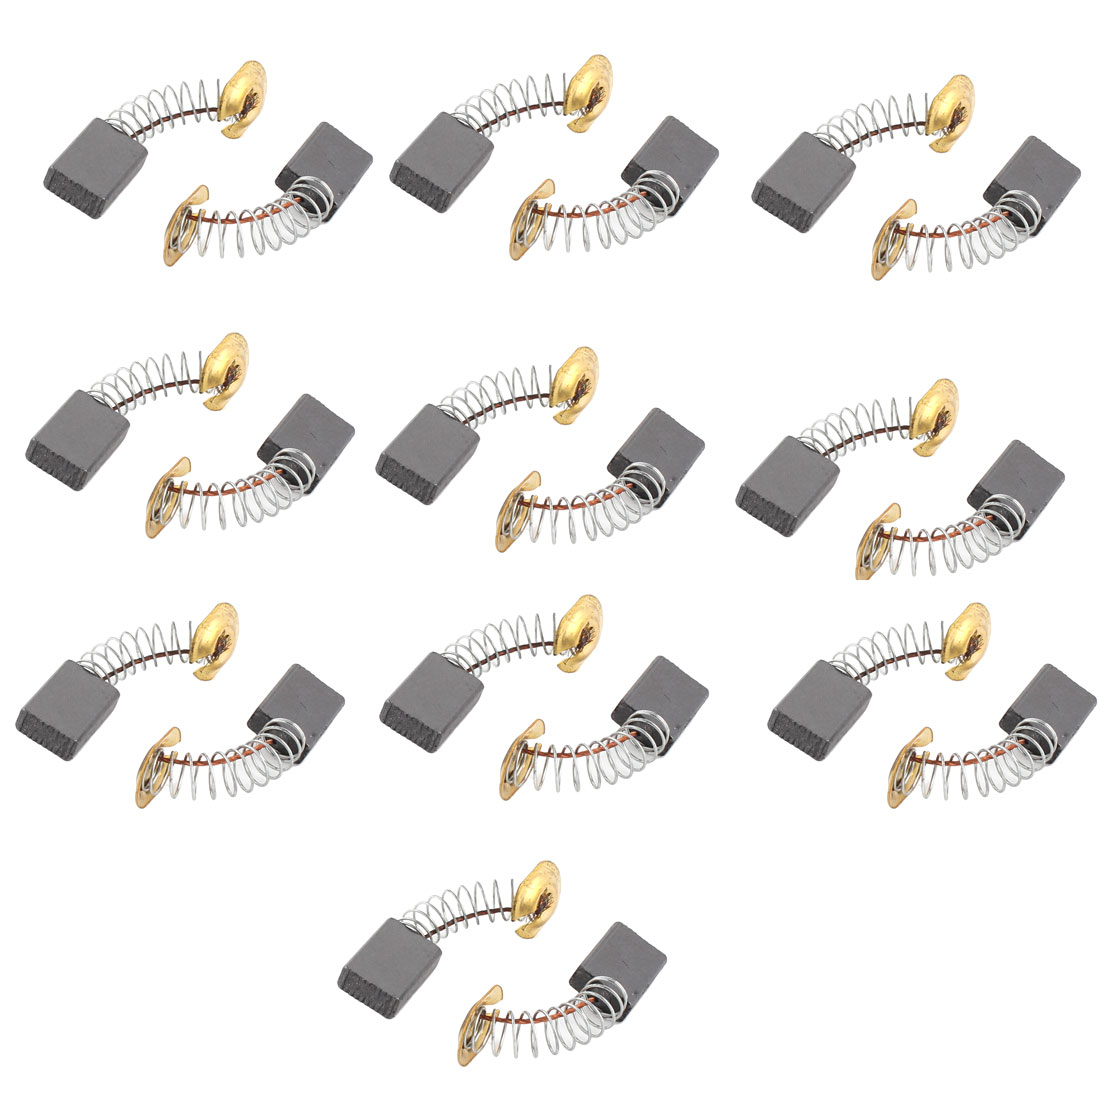 10 Pairs 15 x 11x 5mm Electric Motor Carbon Brushes Power Tool